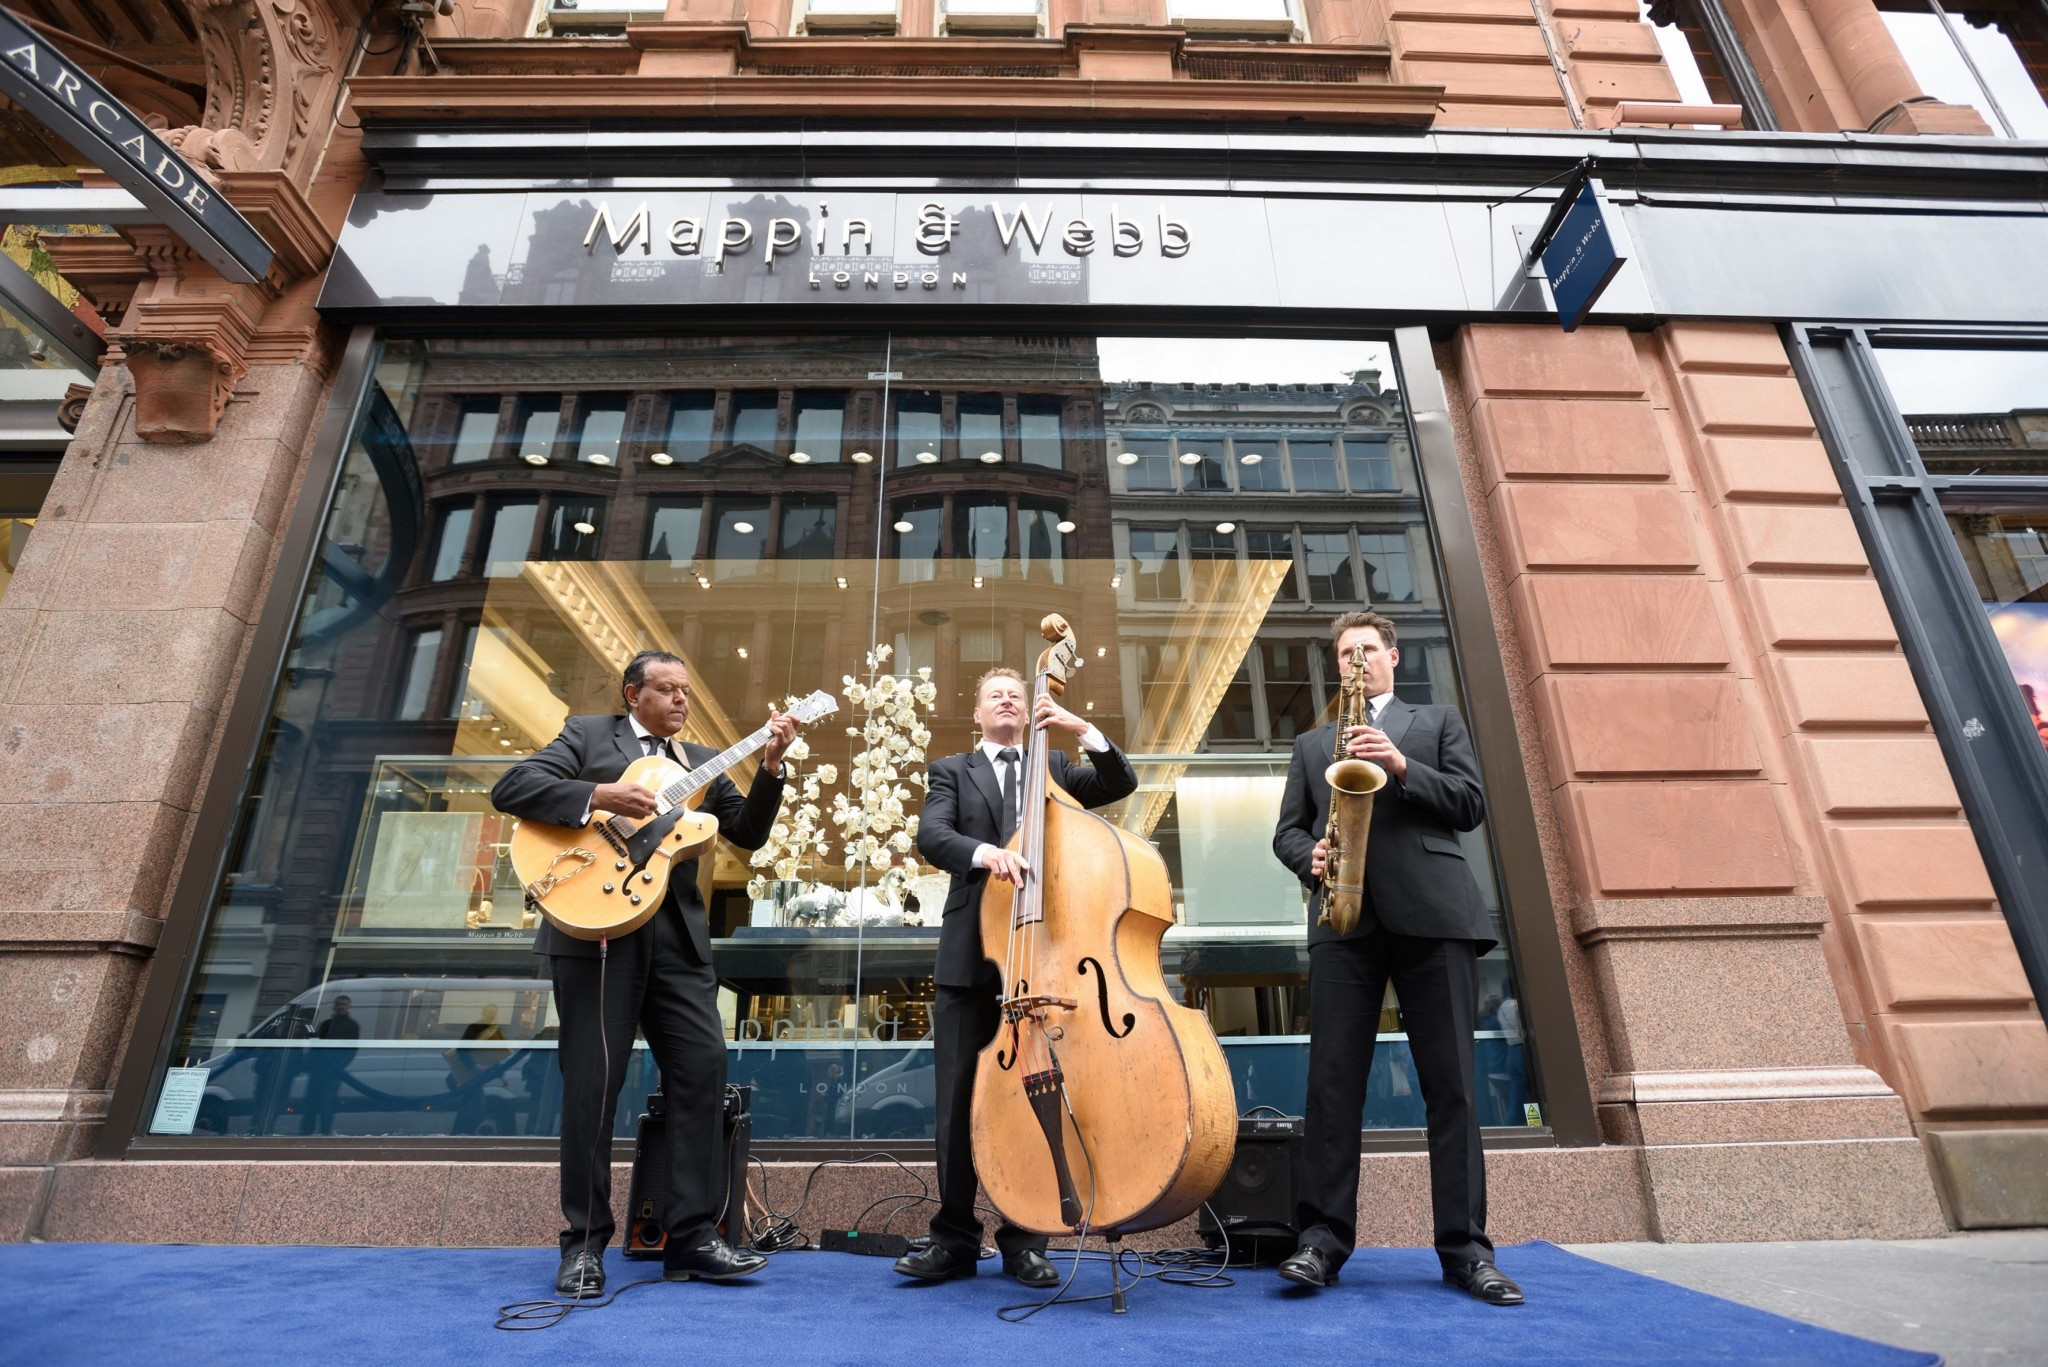 The Ritz Trio perform outside Mappin & Webb Glasgow